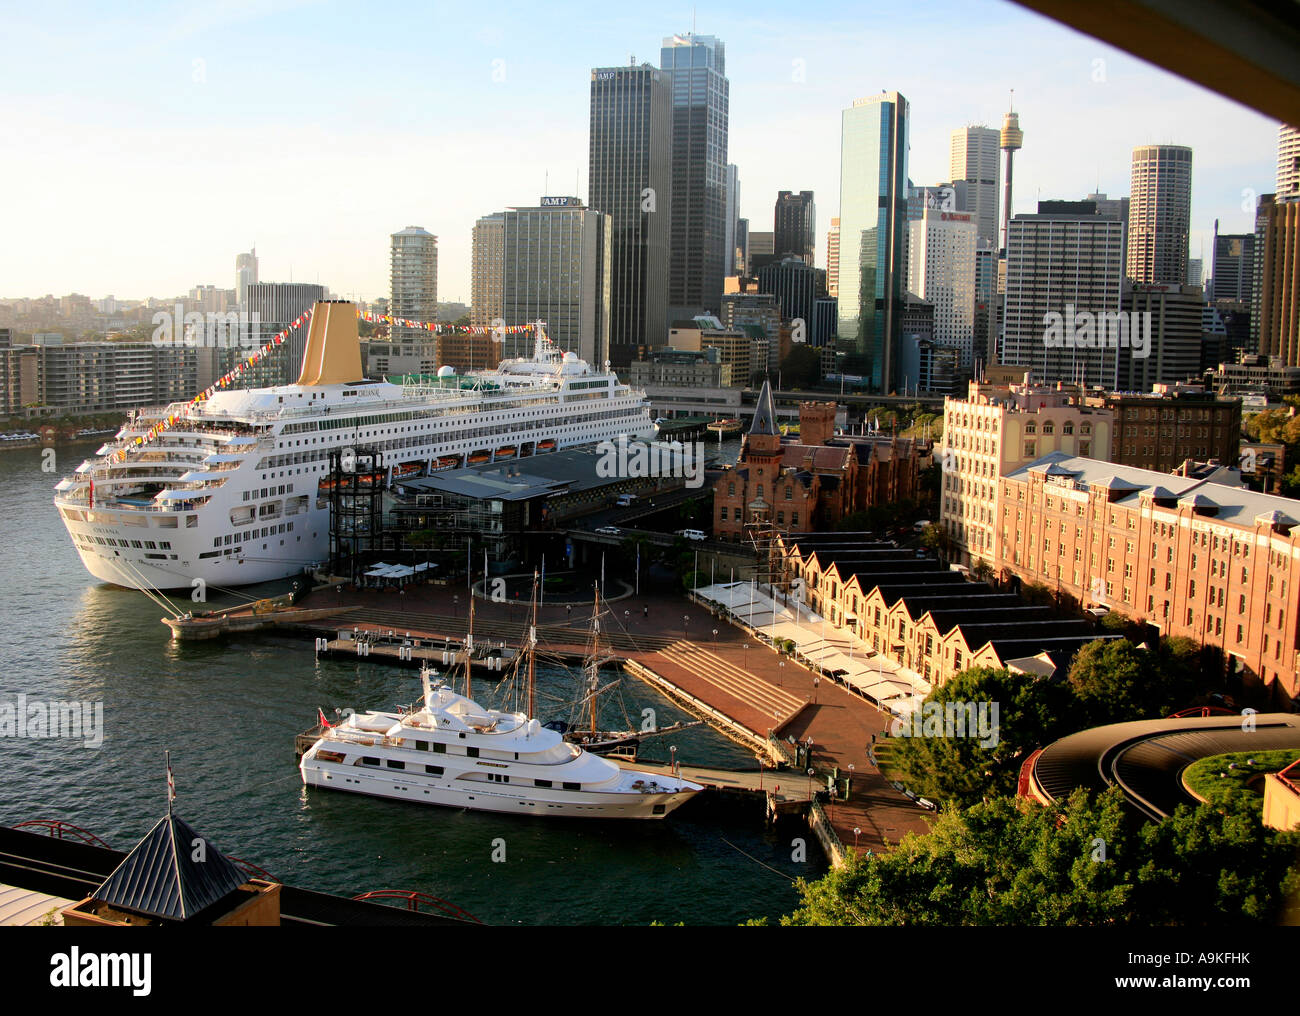 Circular Quay Sydney Australia with the P&O Cruise ship ...